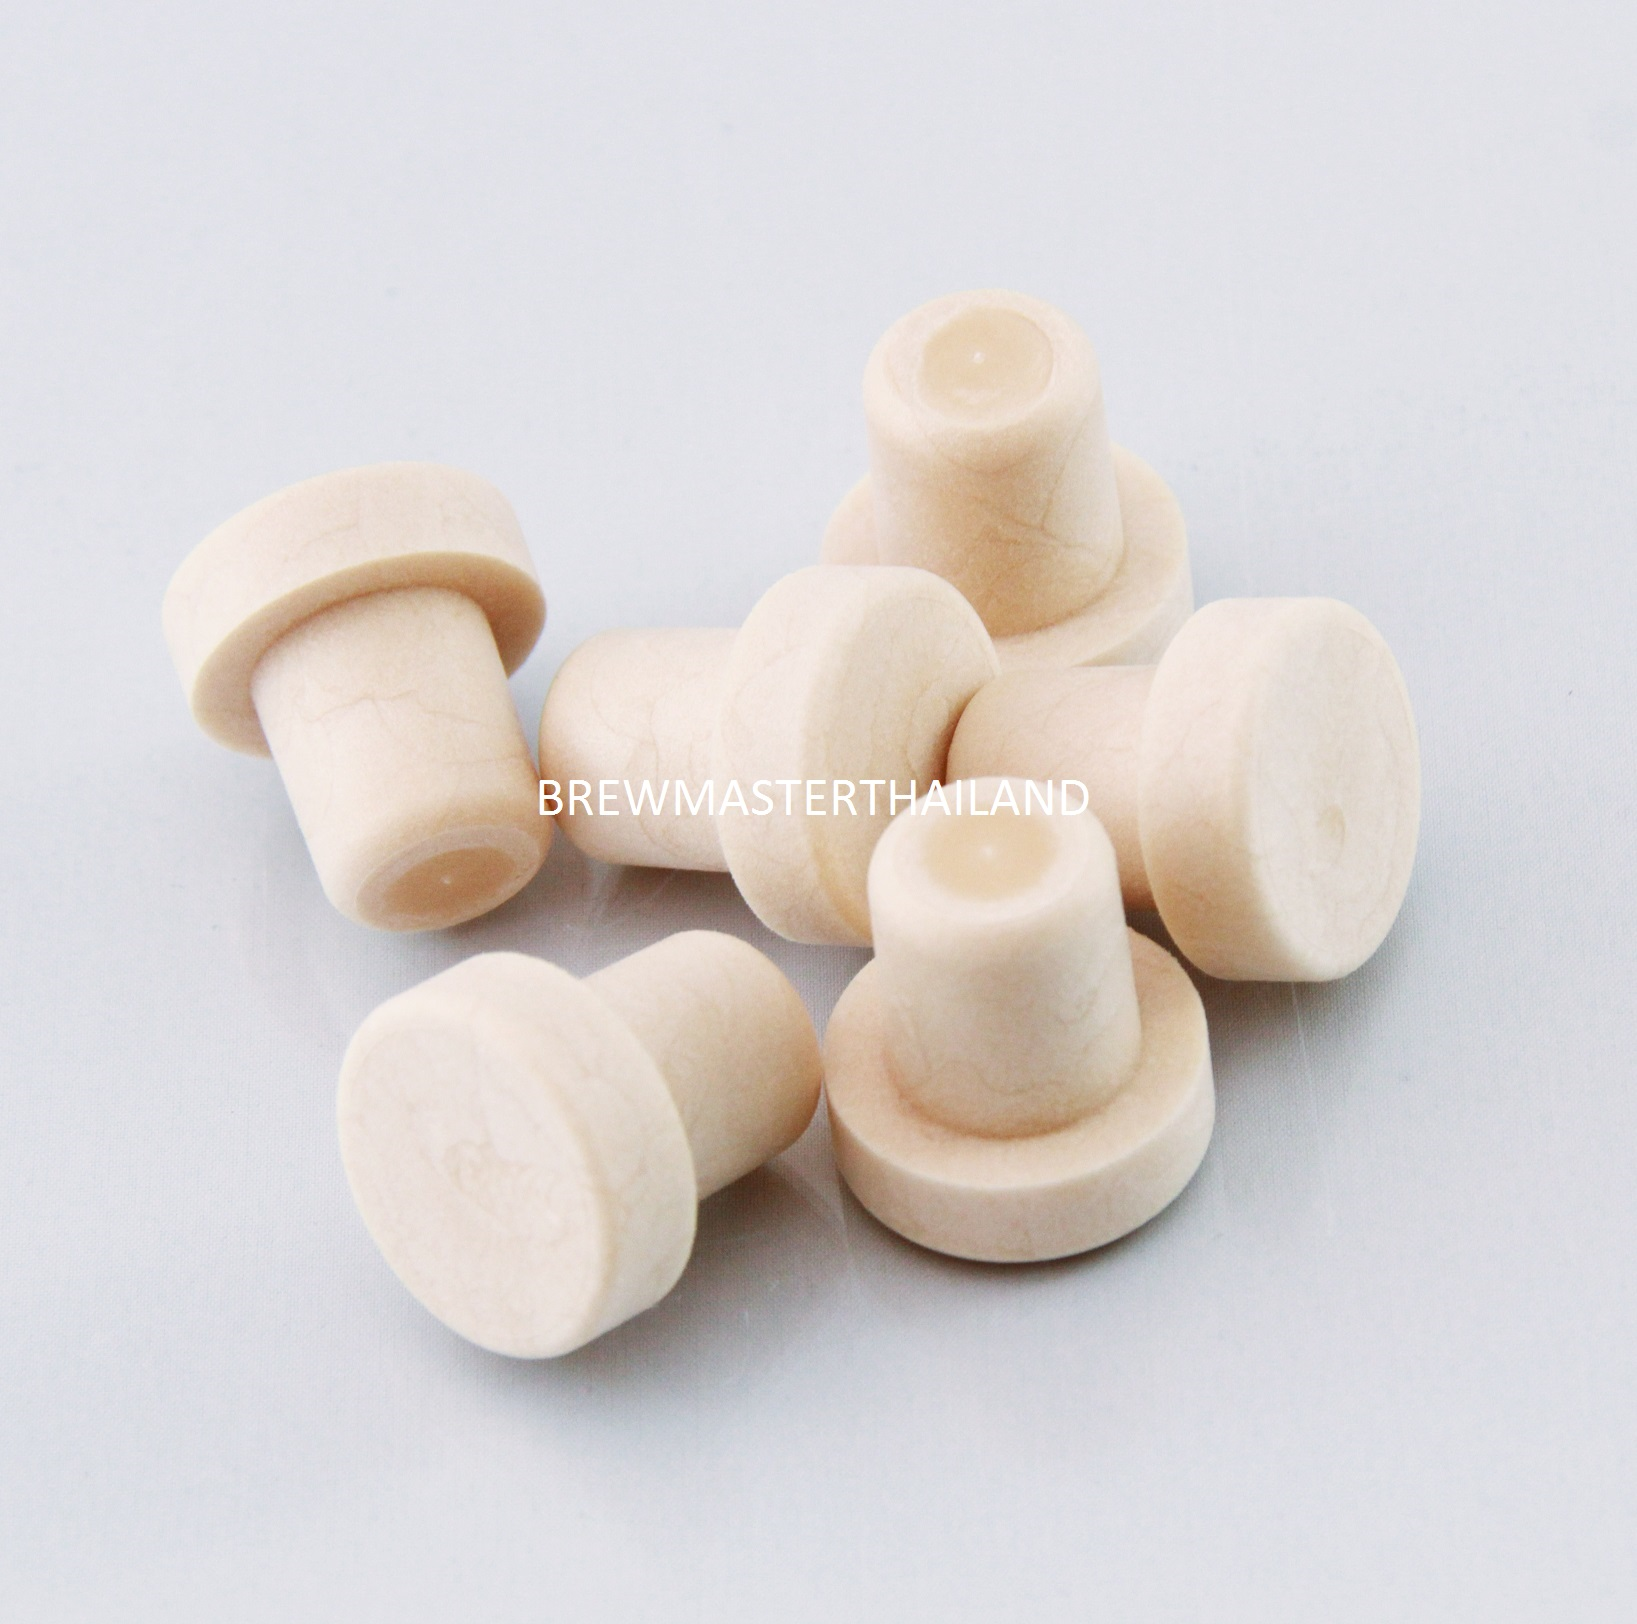 Bottle Cork (25 pcs)